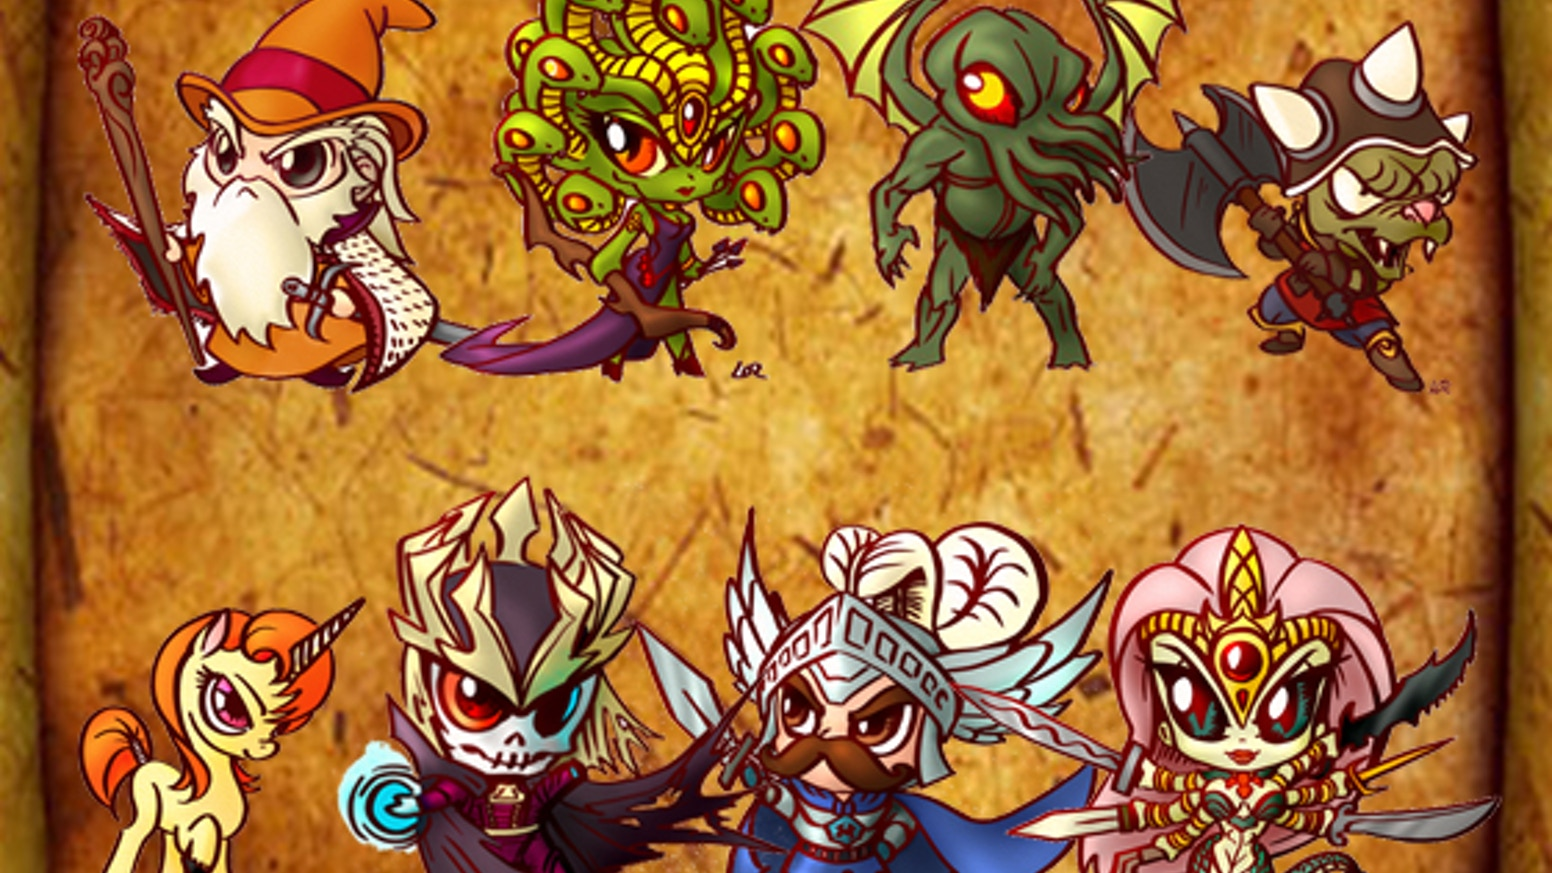 A miniatures line featuring RPG heroes, villains, monsters, Cthulhu and ponies in chibi anime style.